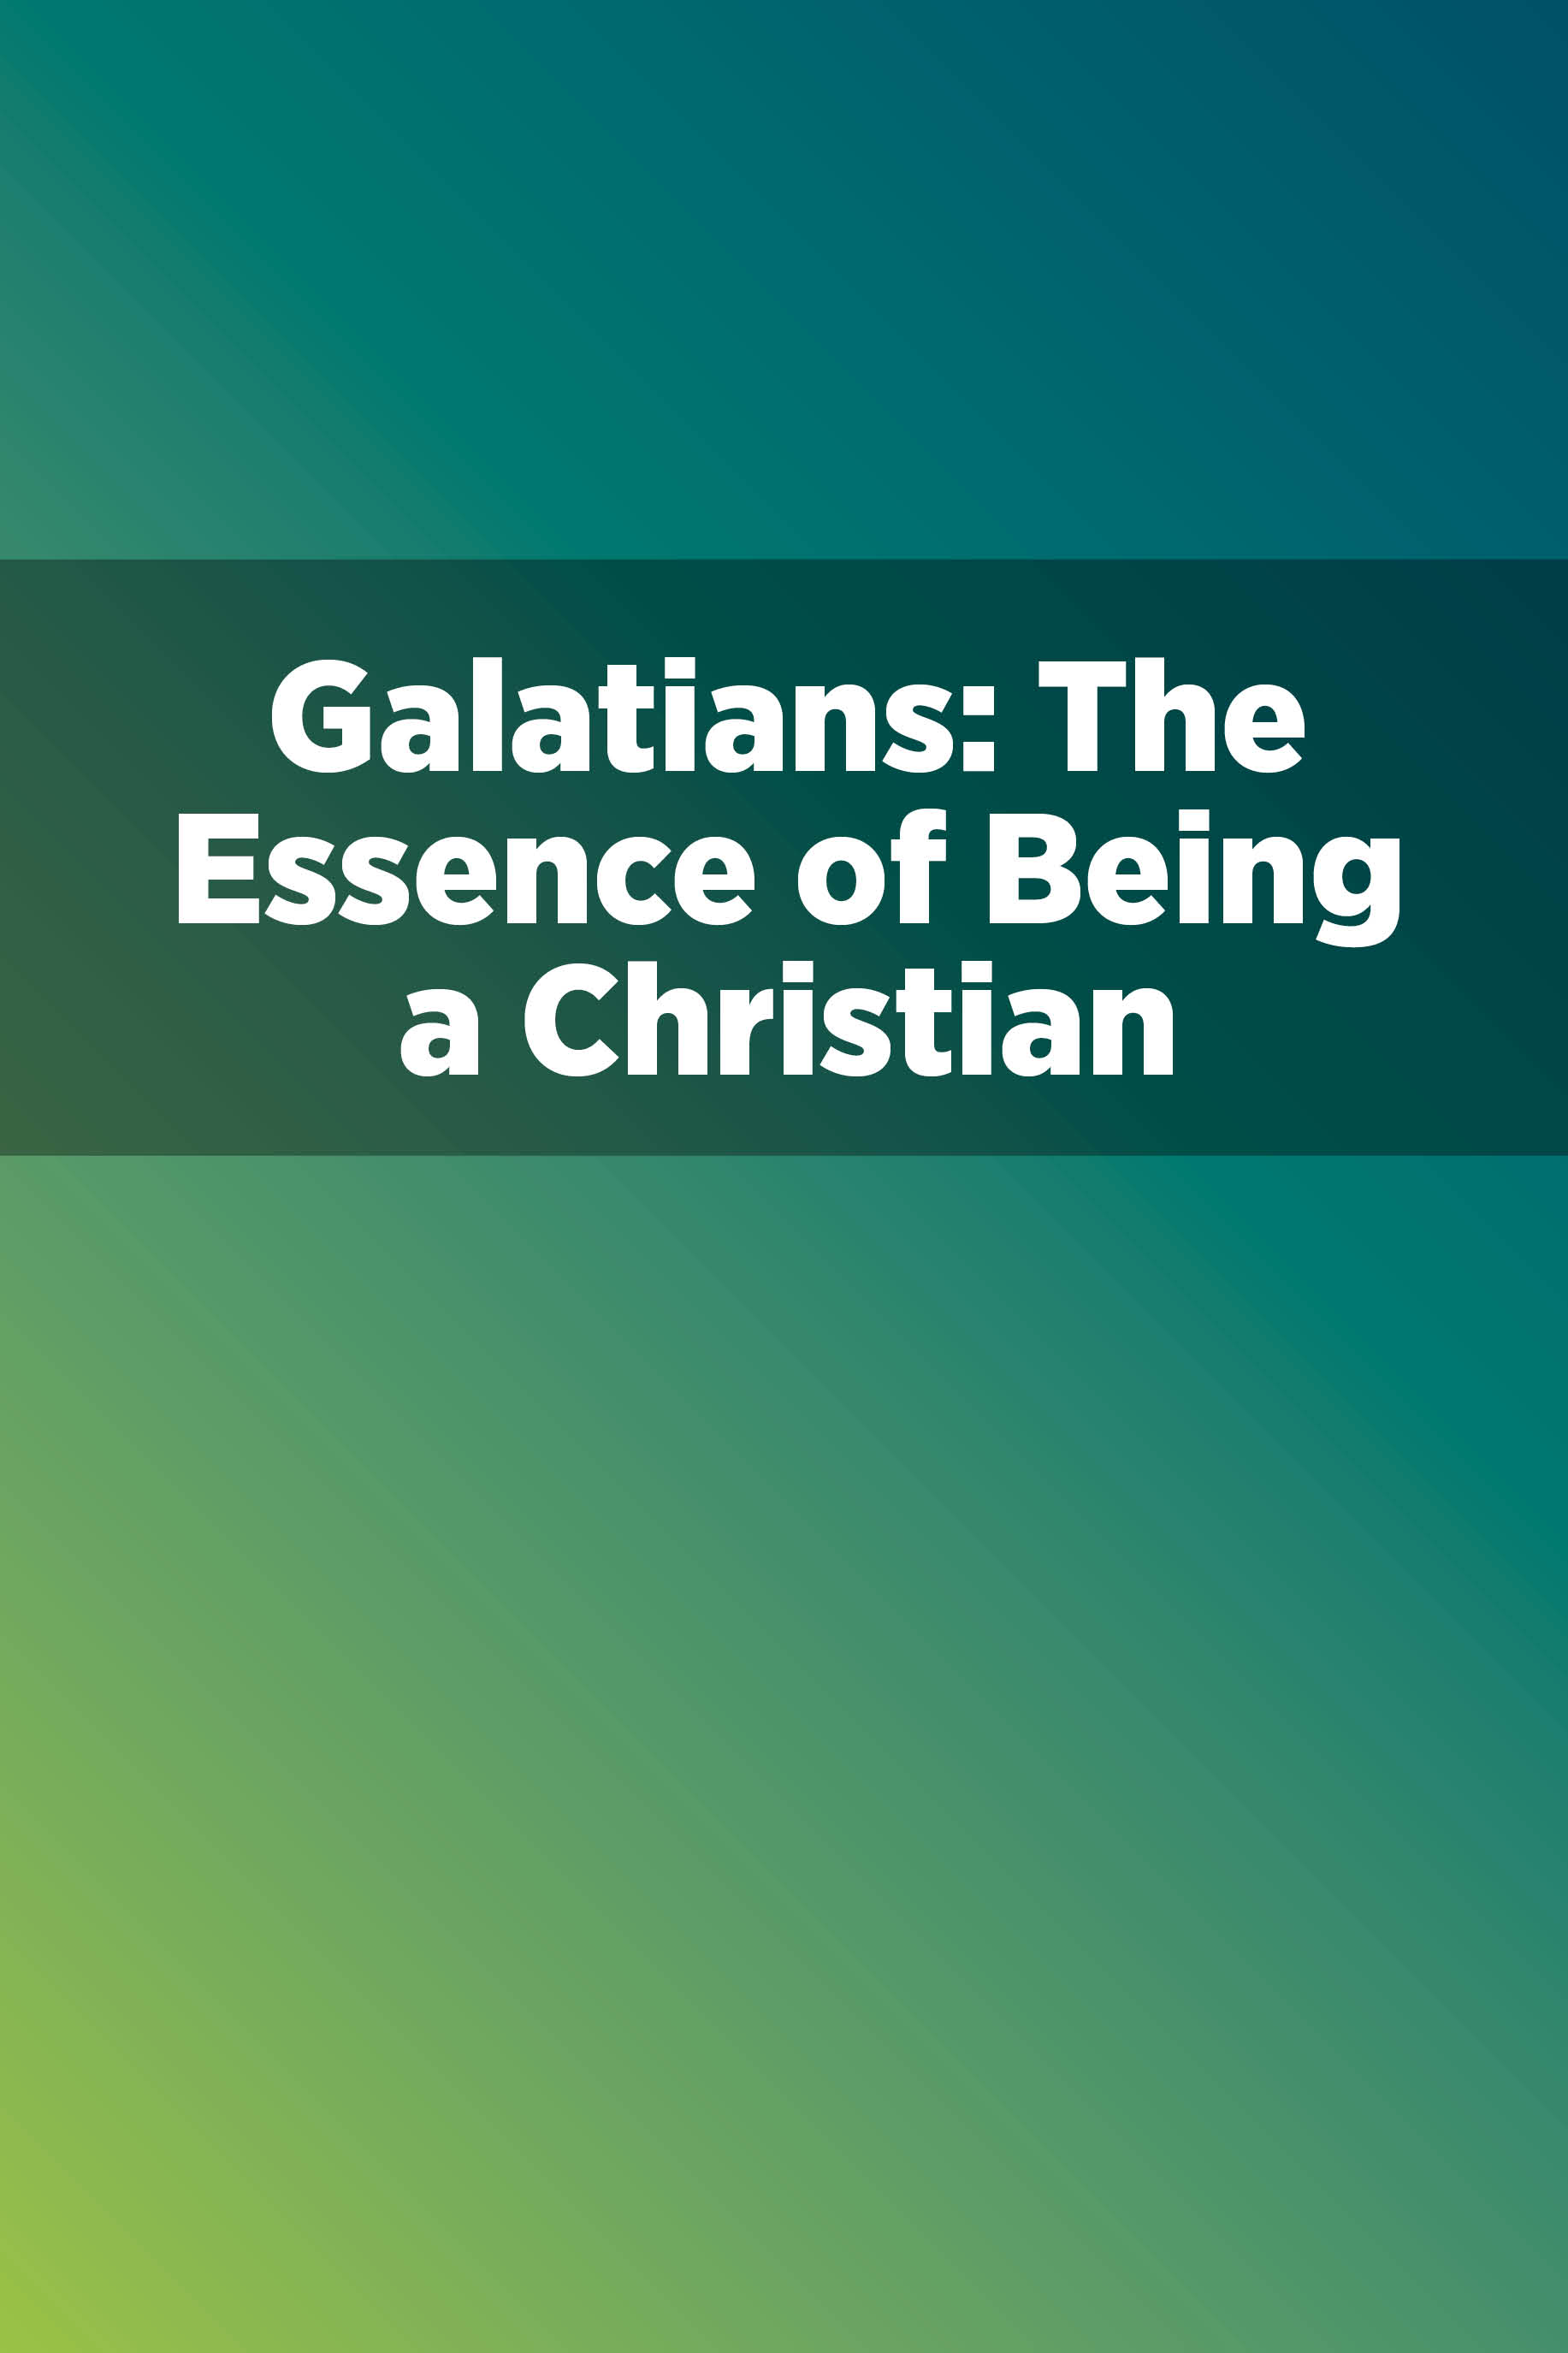 Galatians: The Essence of Being a Christian